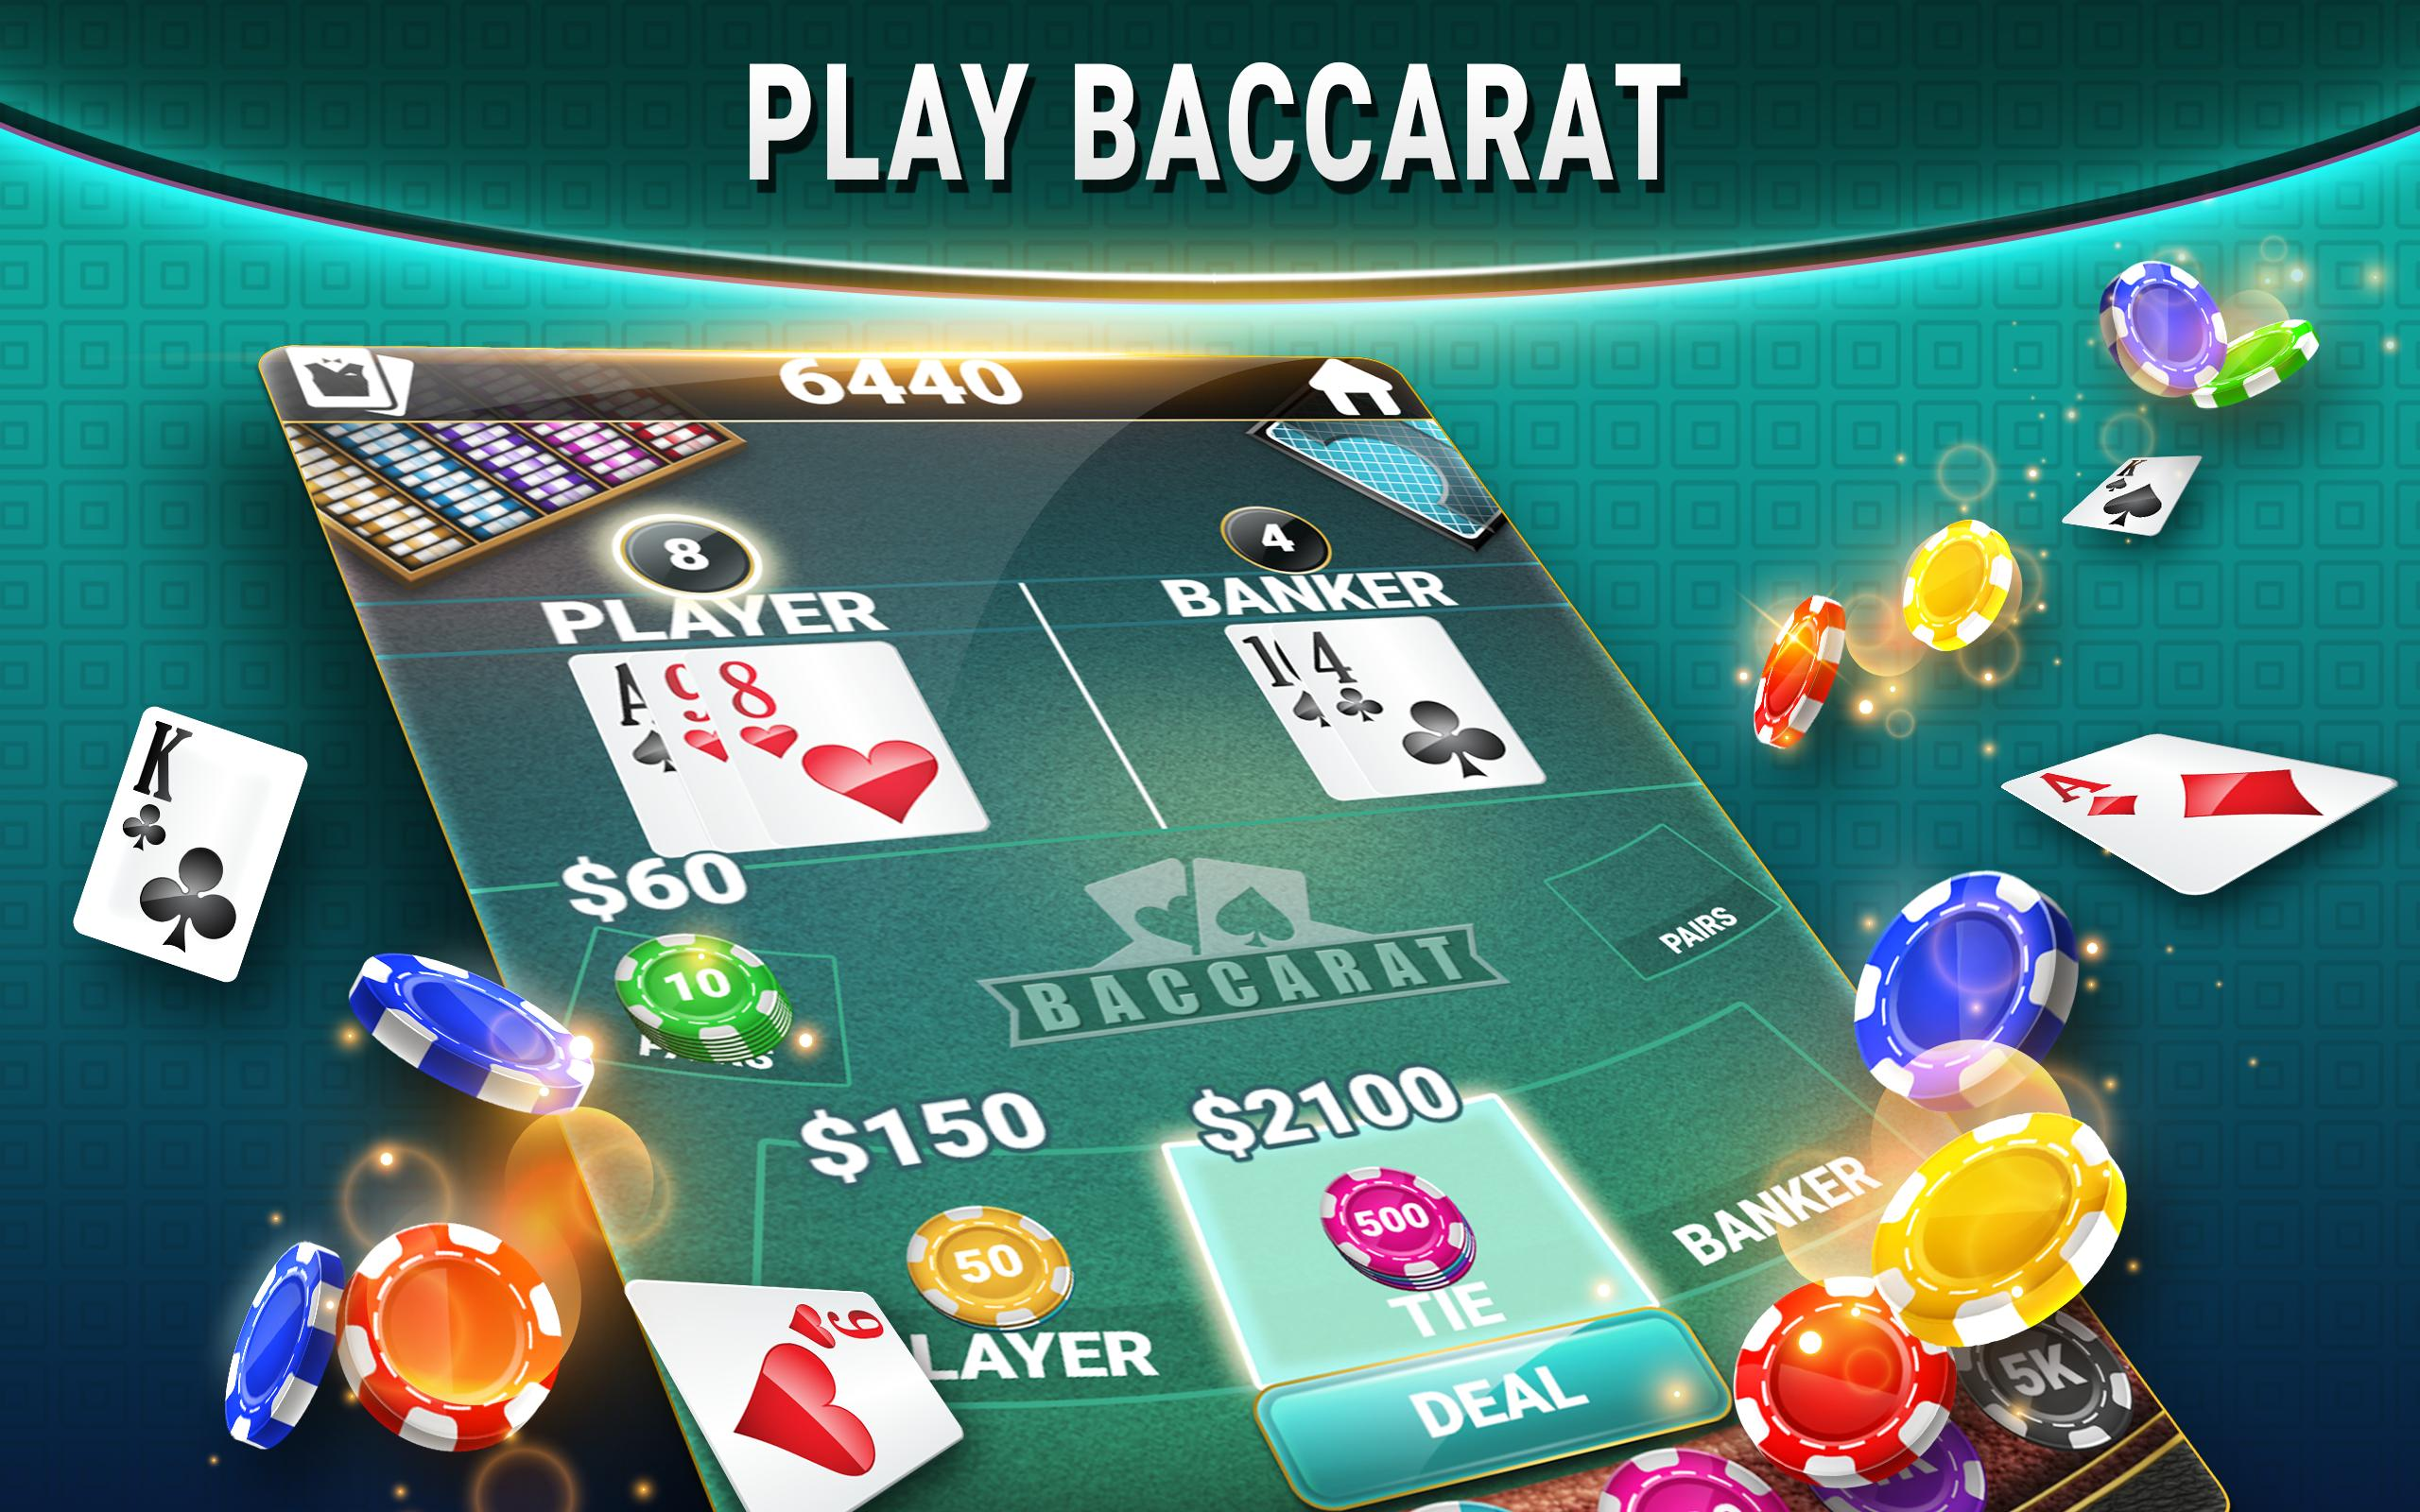 Tips to Choose an Online Casino That is Right for You